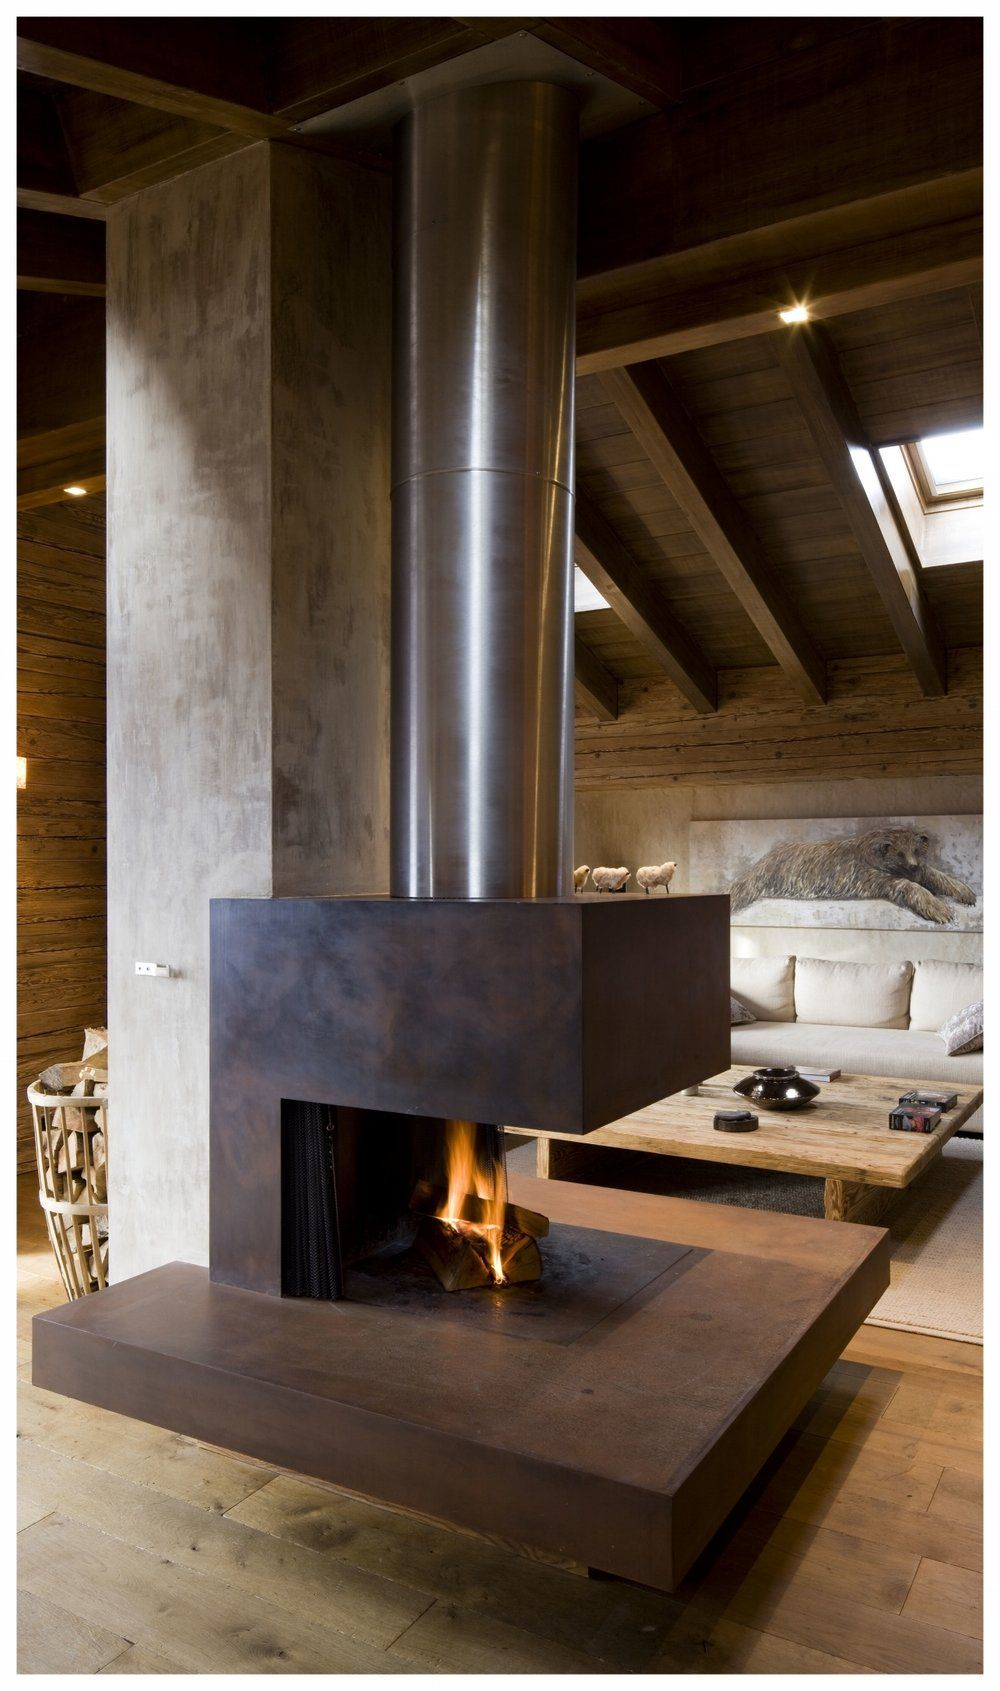 Kaminofen Caminos Montana Pin By Yvonne Wong On Fireplaces Hogar Casas Chimeneas